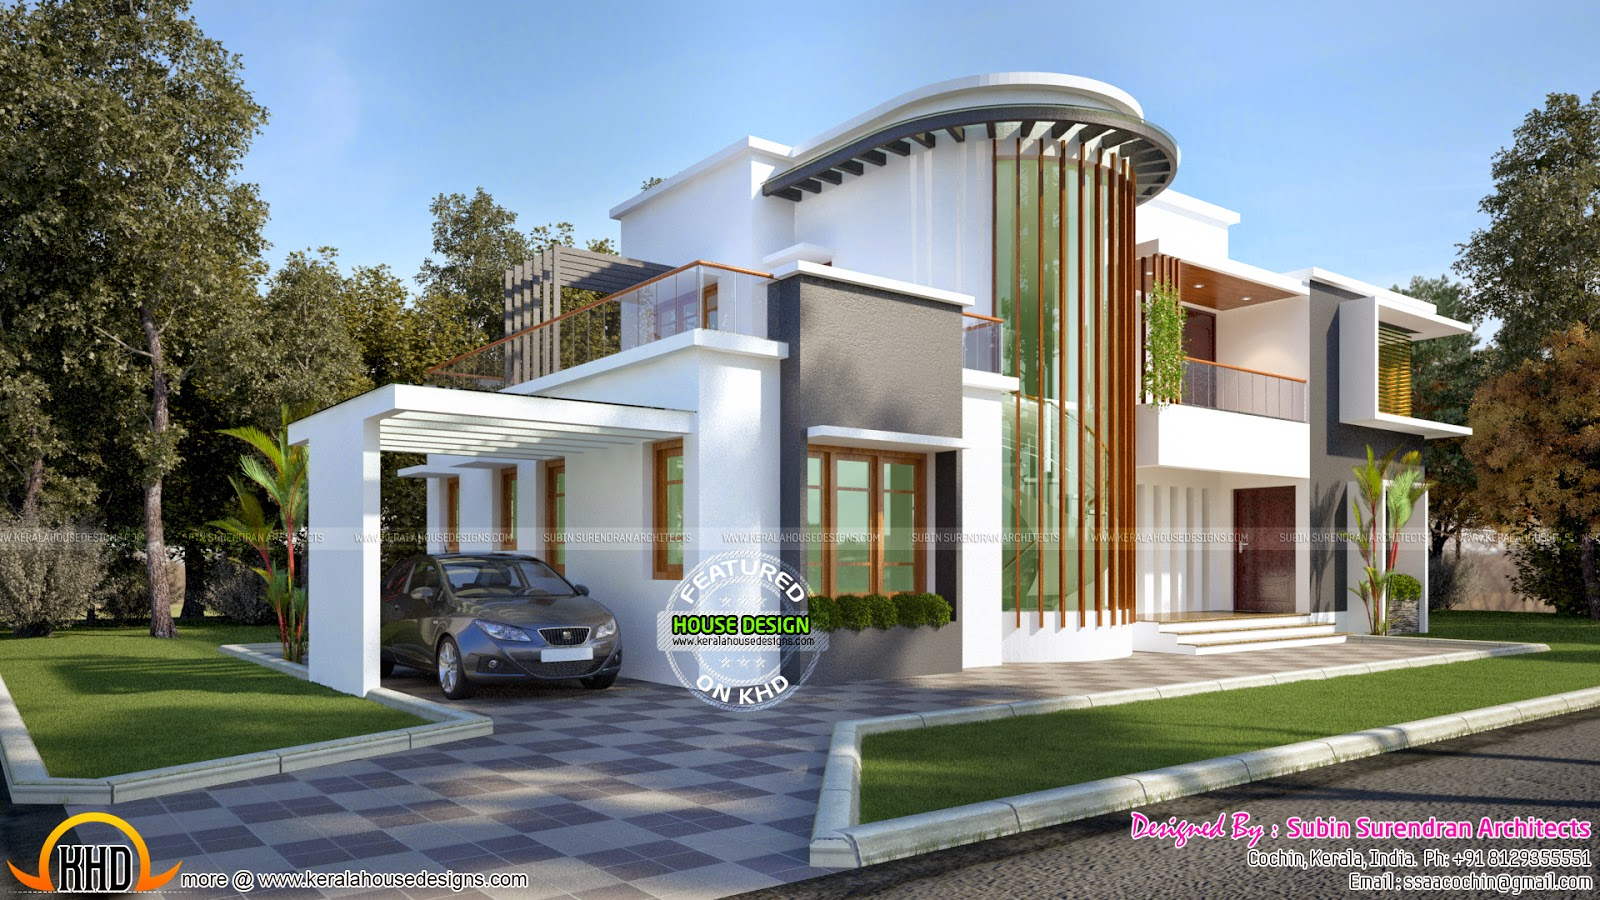 Dream Luxury Garage besides Swimming Pools Design in addition 2 Story House Floor Plans With Courtyard further 2 Bedroom Villa Floor Plans With Pool further Lullingstone Roman Villa Floor Plan. on two bedroom pool villa floor plans